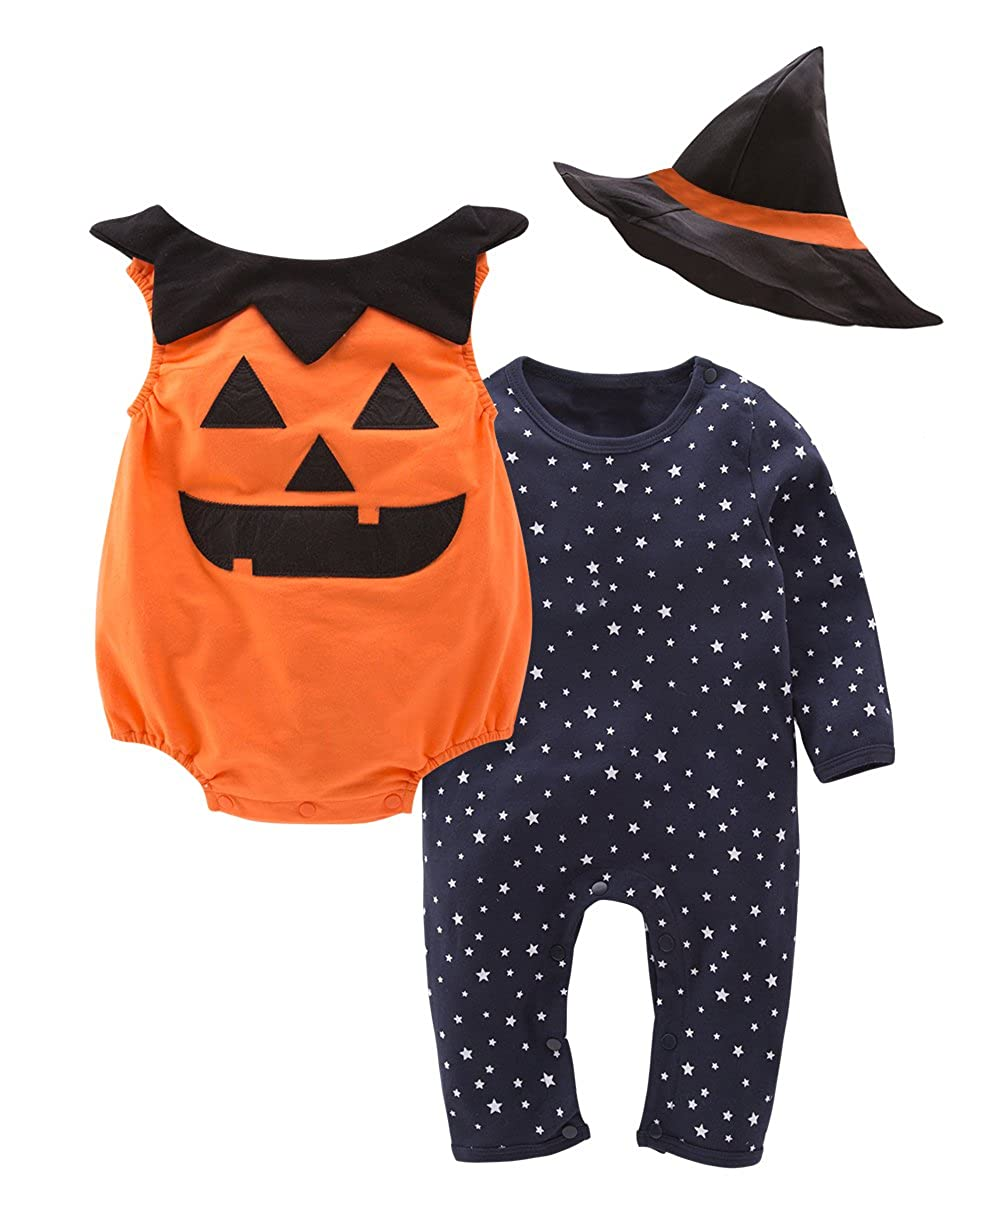 May's Baby Boys Girls Halloween Bodysuits Pumpkin Pants Hat Outfits 3pcs Set